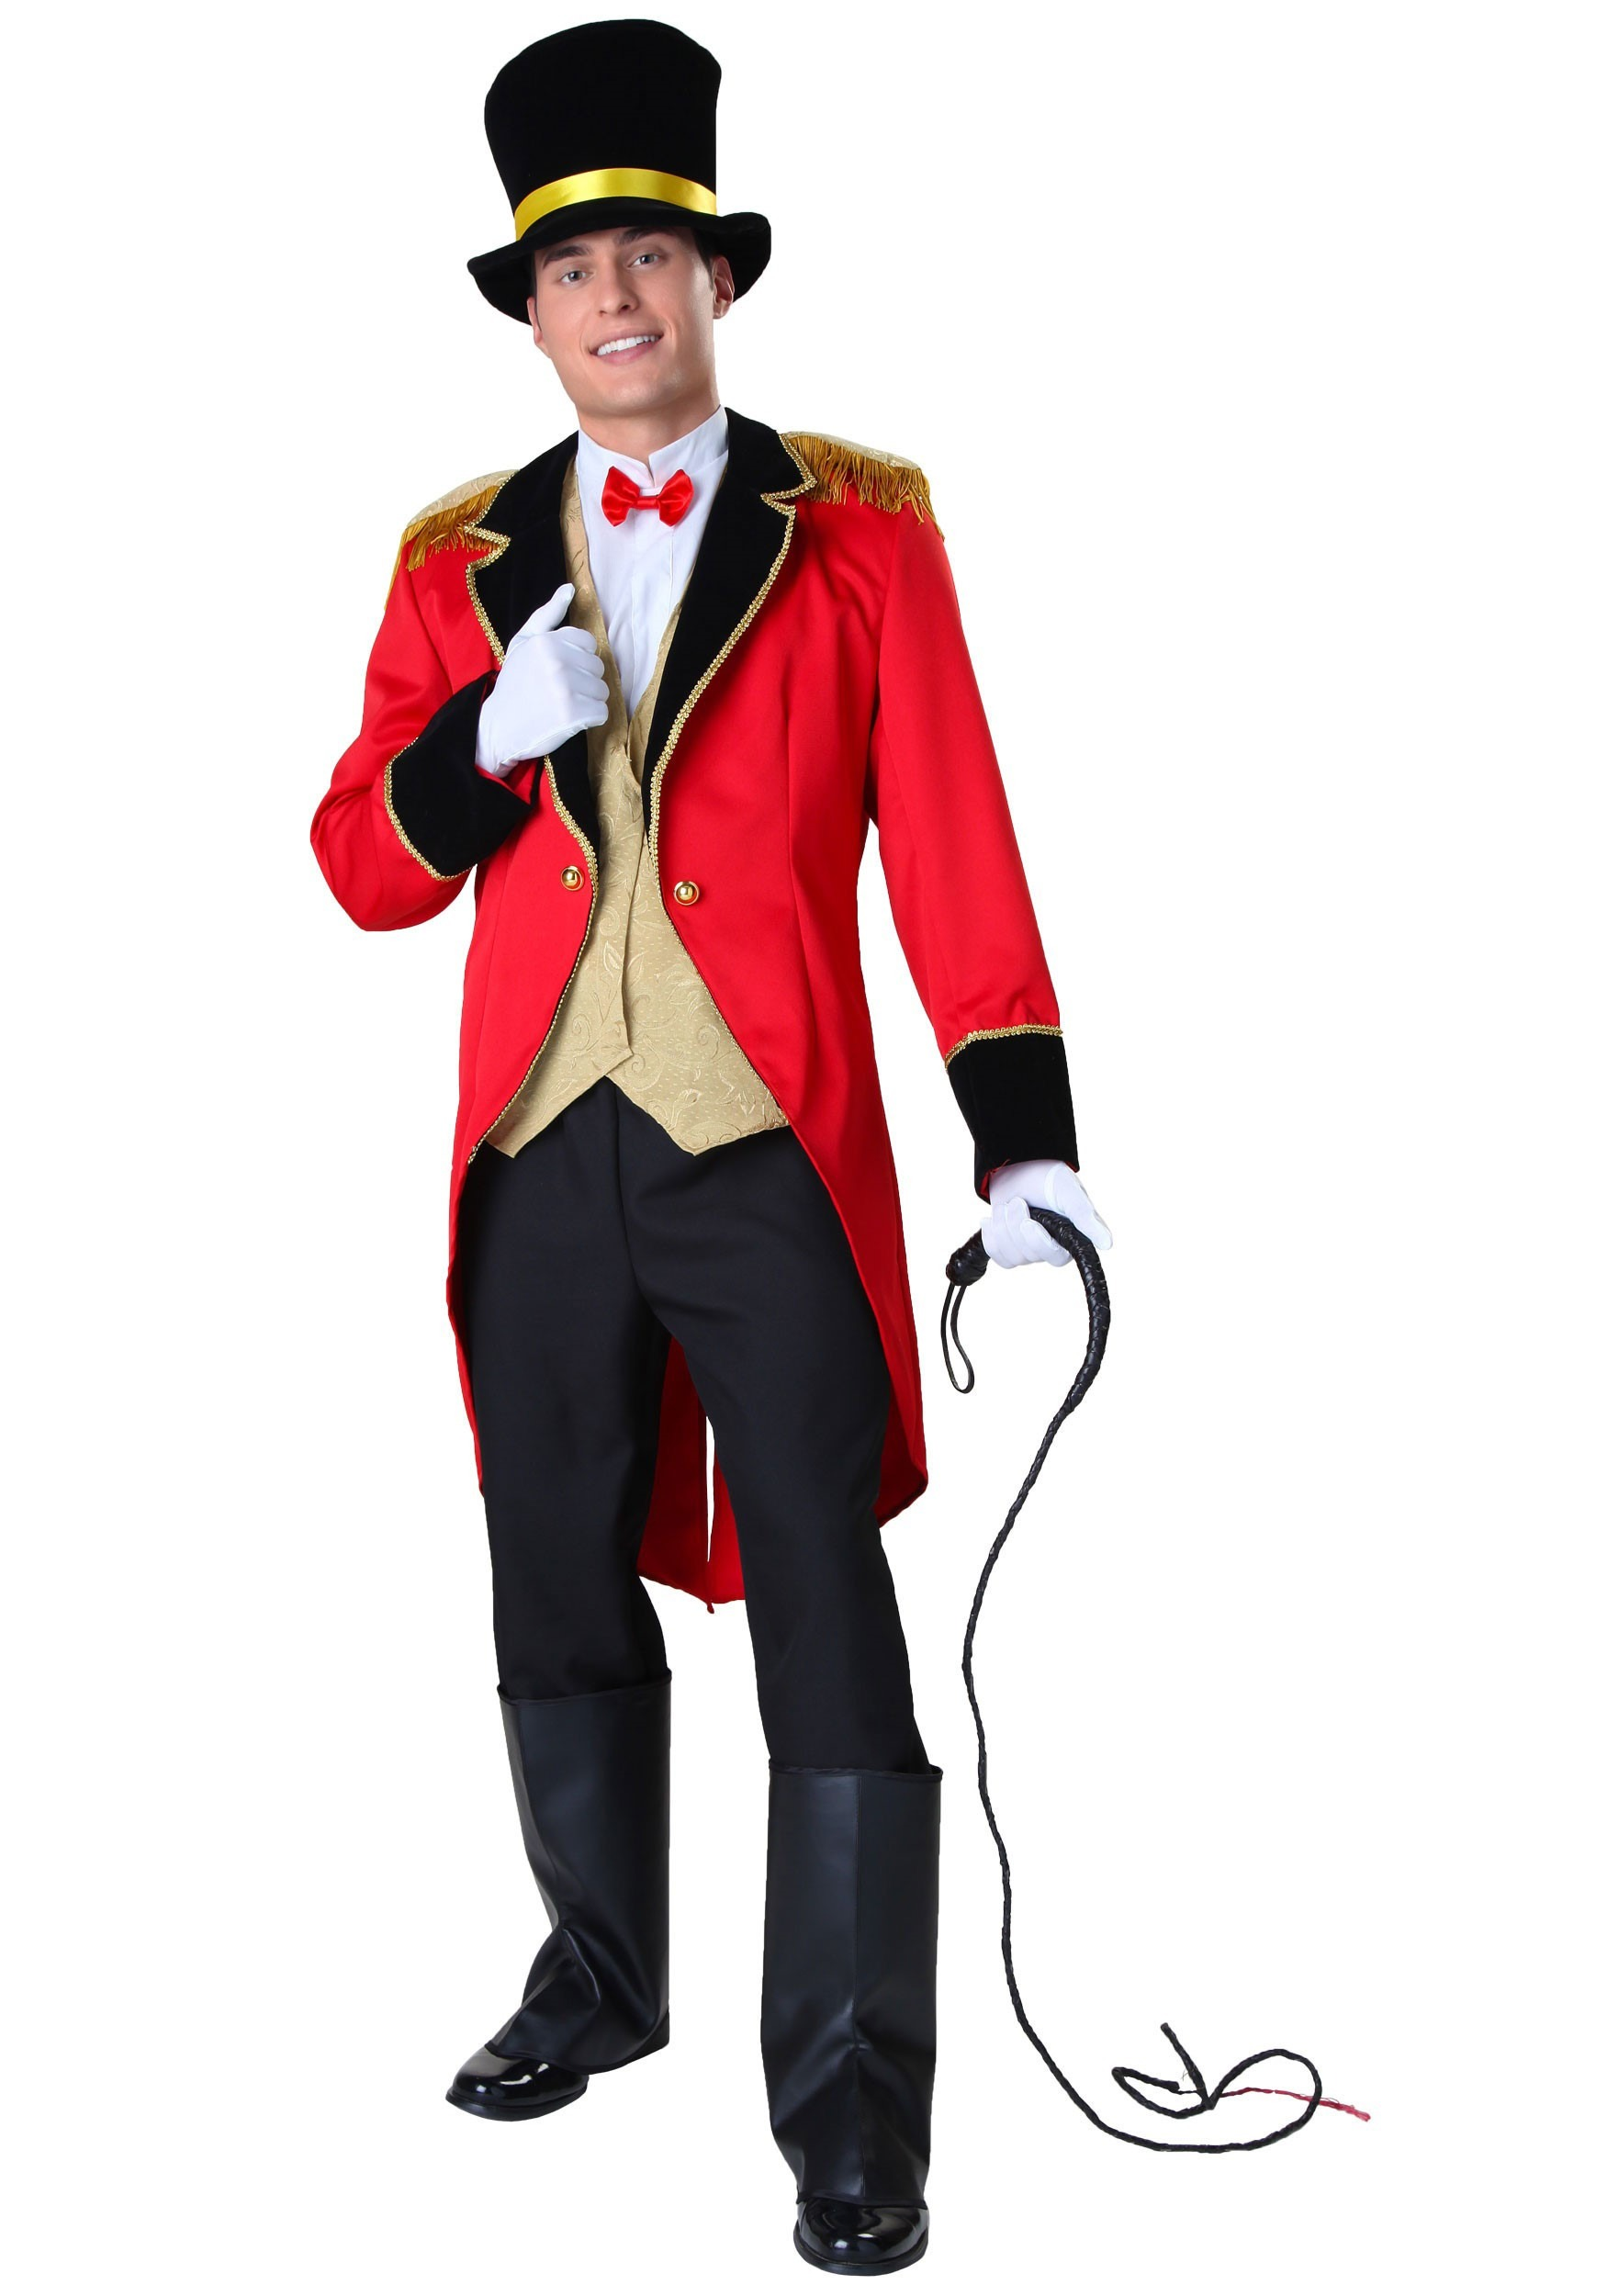 ADULT RINGMASTER COSTUME with Jacket Vest Front Bow Tie Hat Boot Tops